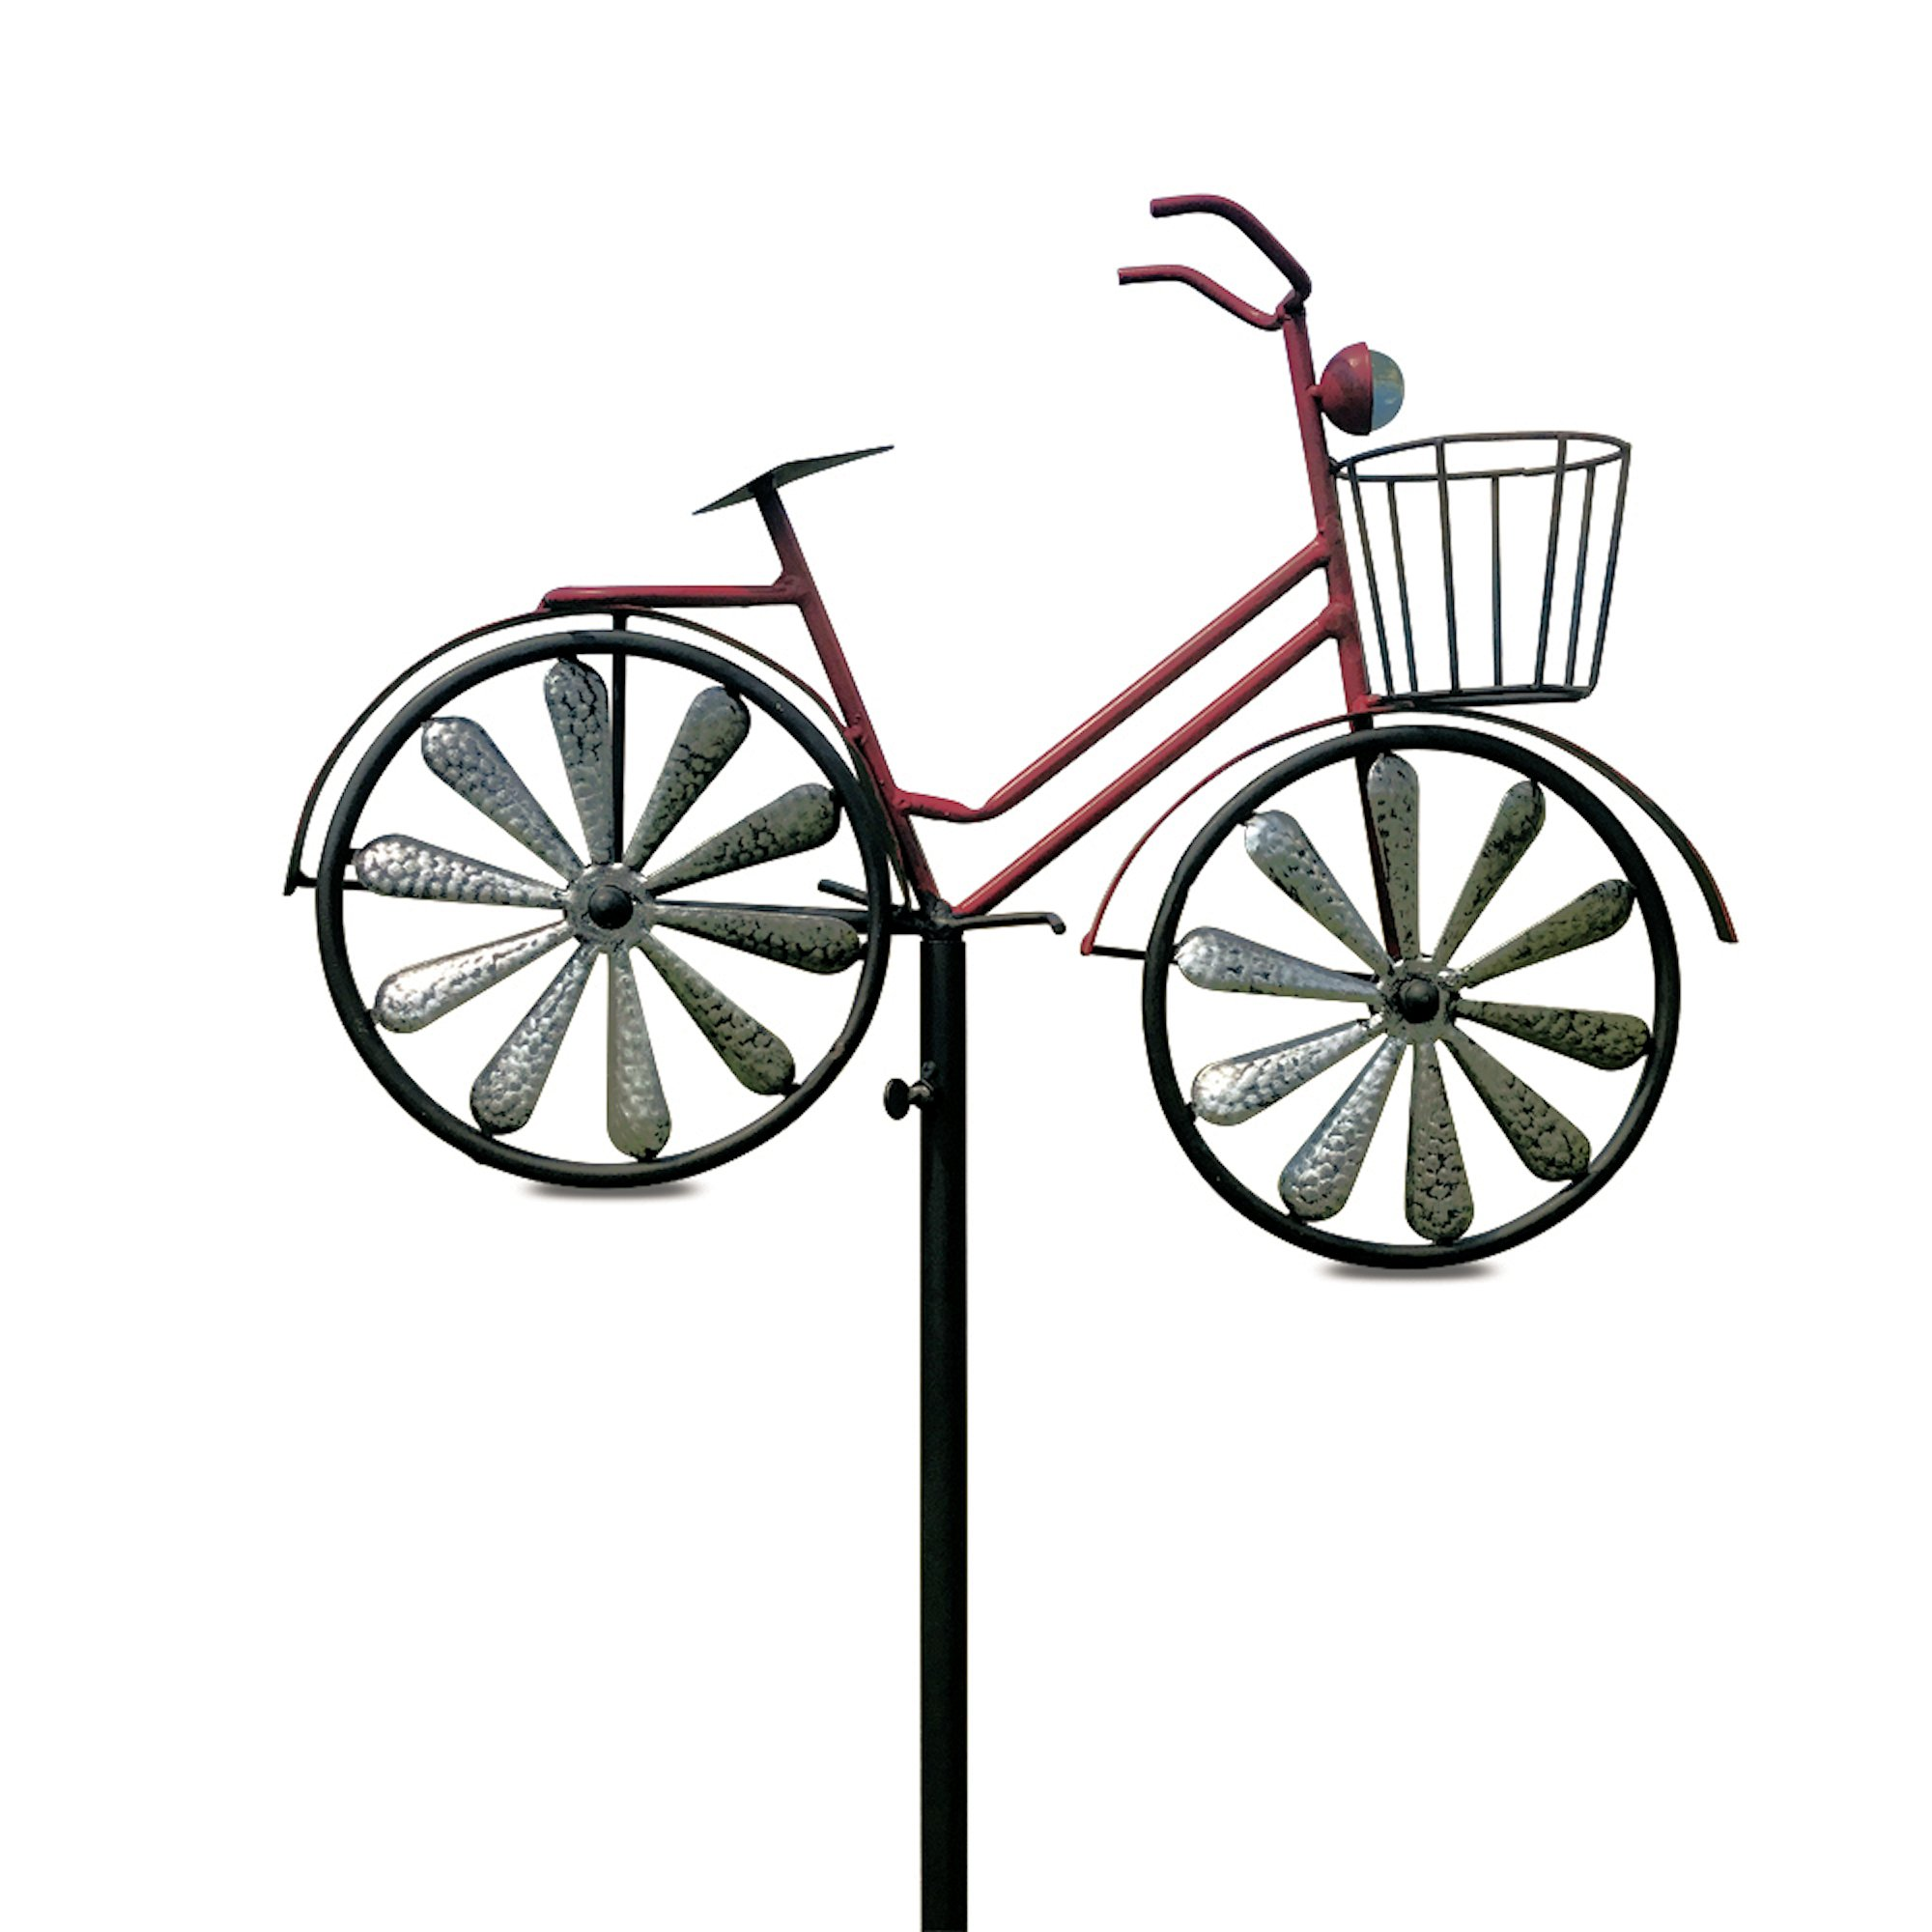 Whole House Worlds The Americana Red Bike Garden Stake with Spinning Wheels, Front Basket, Vintage Style Details, Outdoor Decoration, Rustic Red with Antiqued Finish, Over 4 Feet Tall (52 inches)